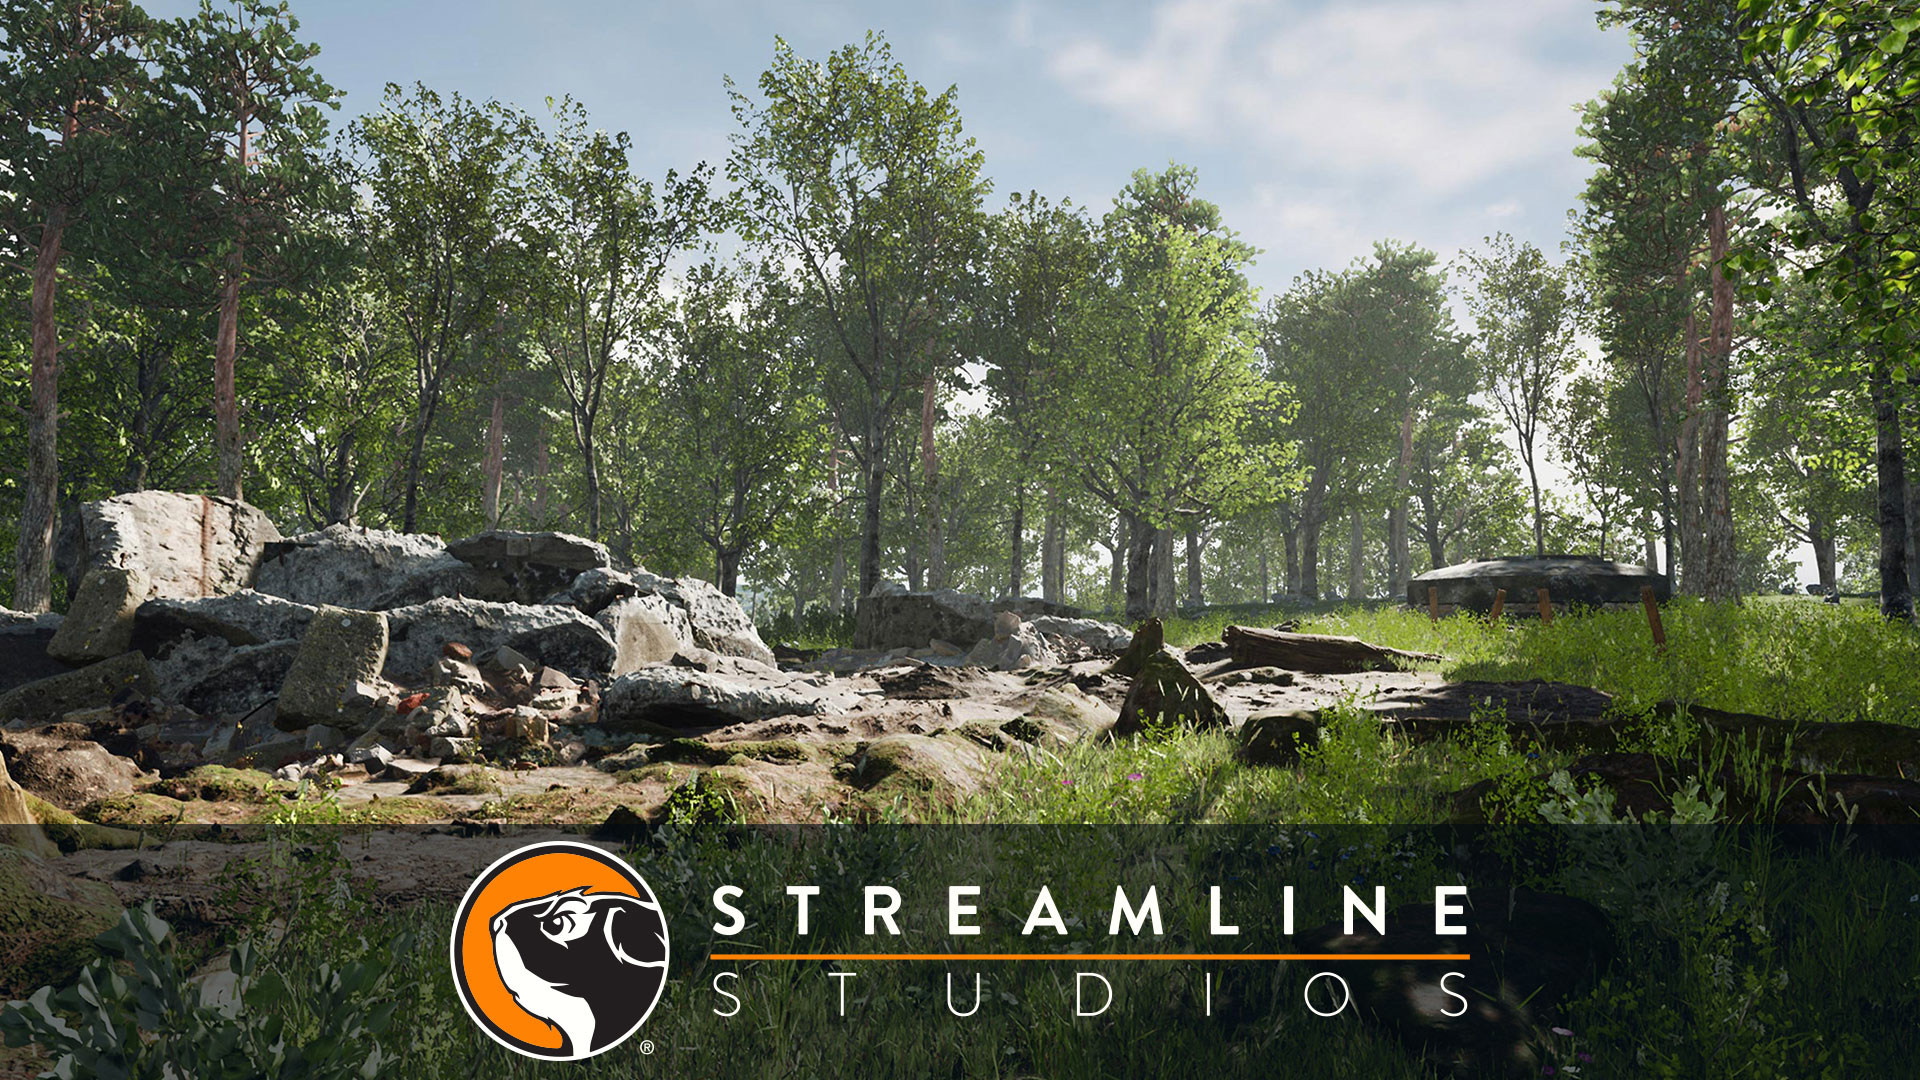 Streamline Studios - Technical Creativity